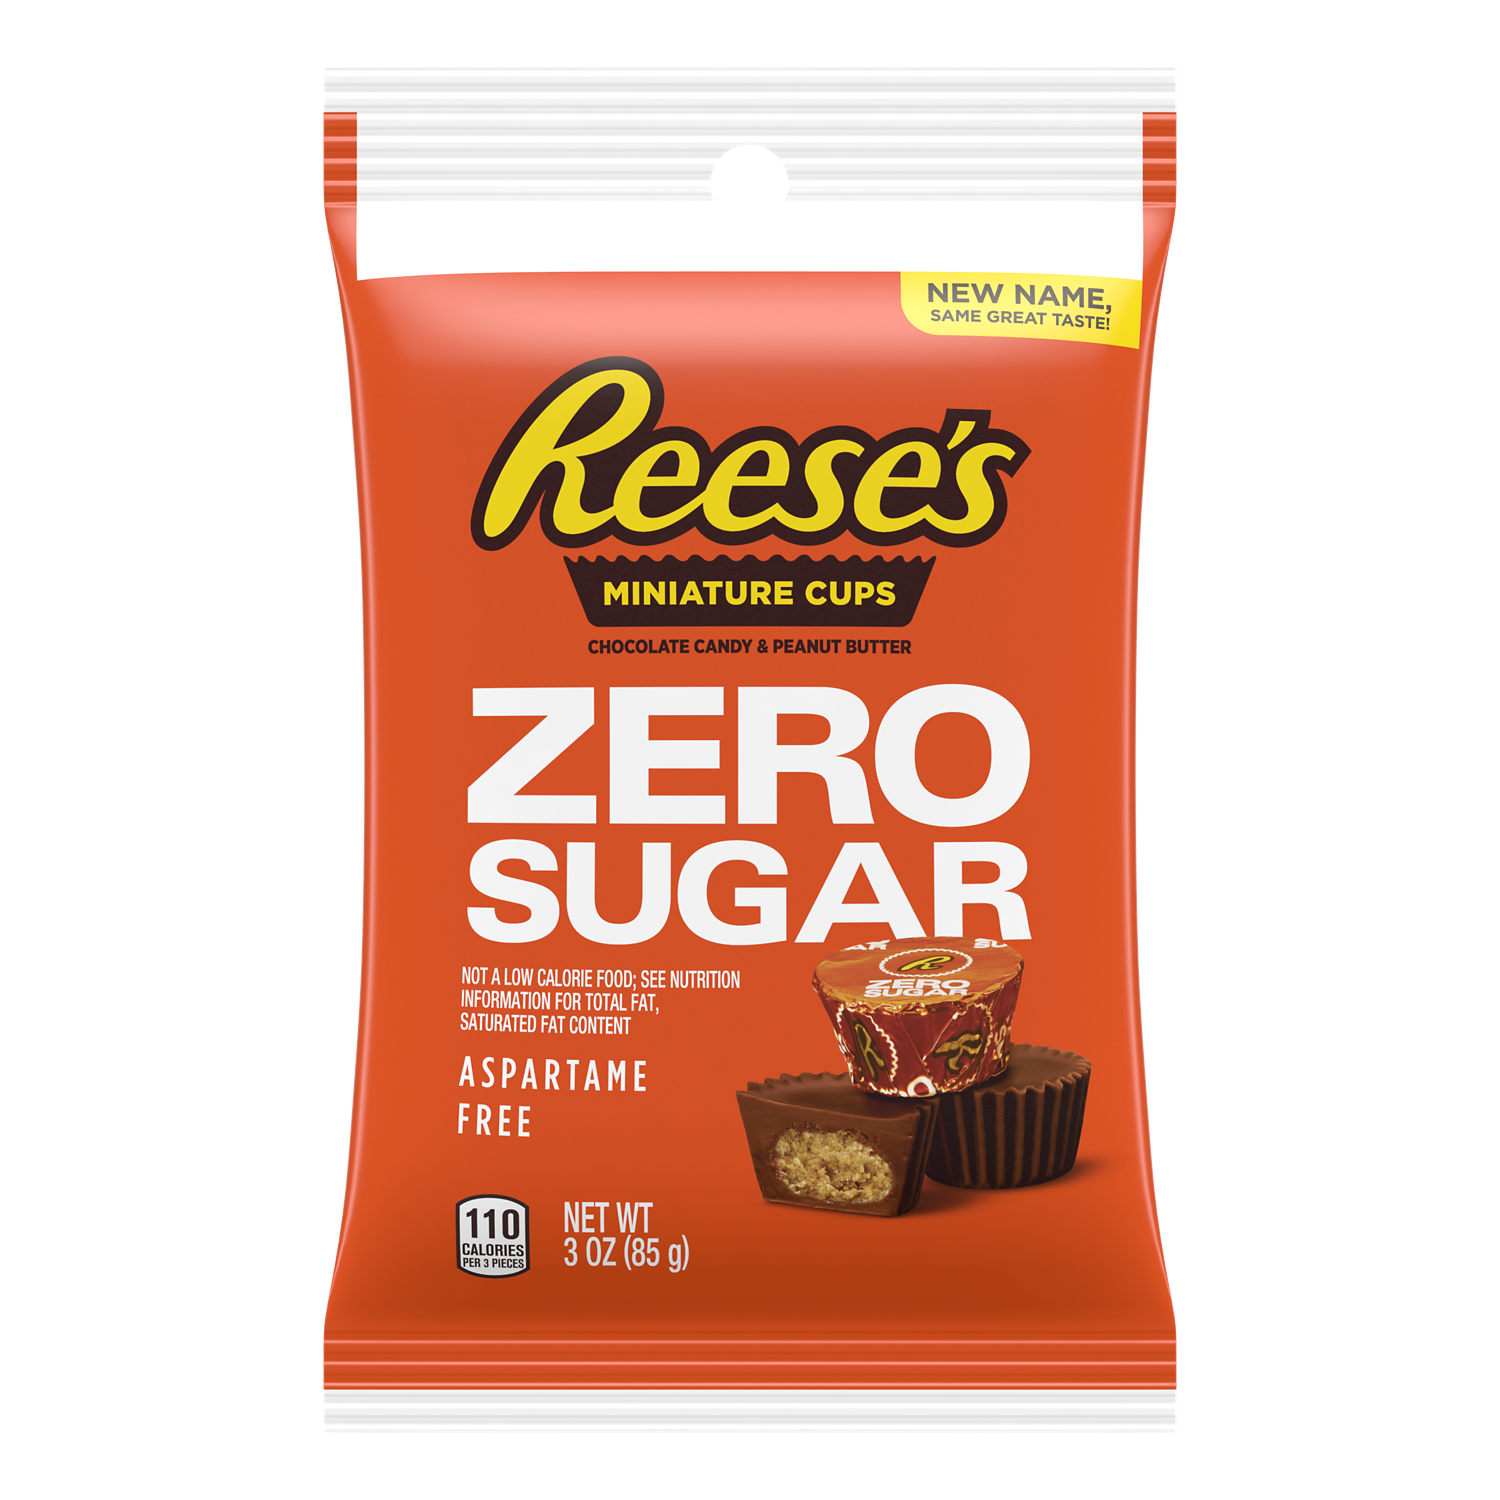 REESE'S Zero Sugar Miniatures Chocolate Candy Peanut Butter Cups, 3 oz bag - Front of Package